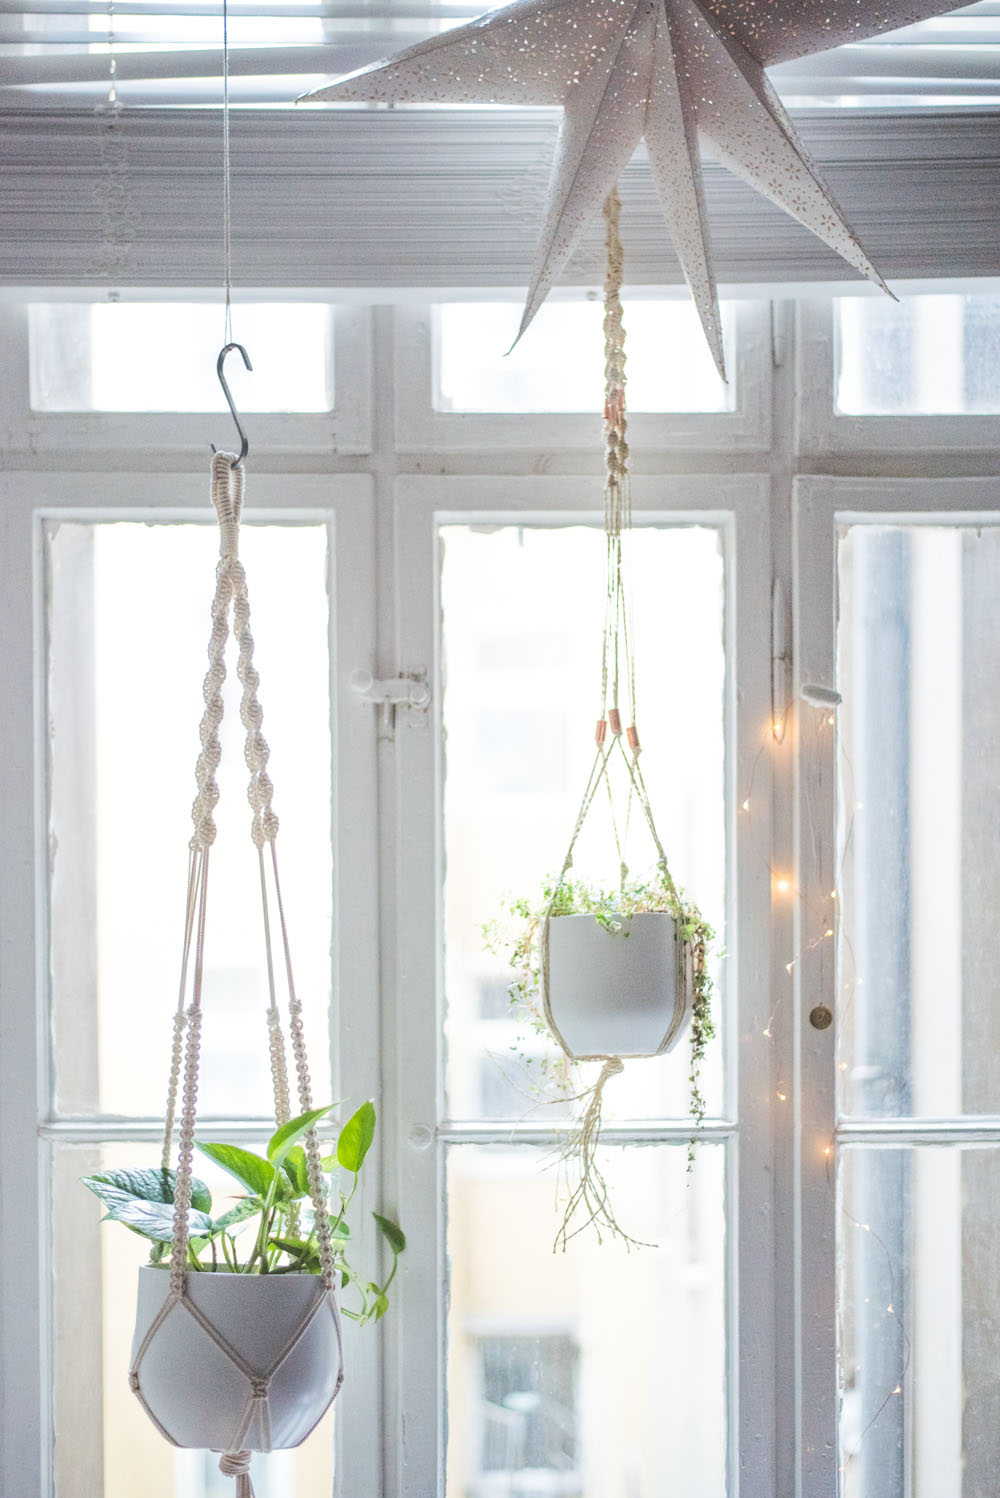 Step By Step Macrame Plant Hanger Instructions Images